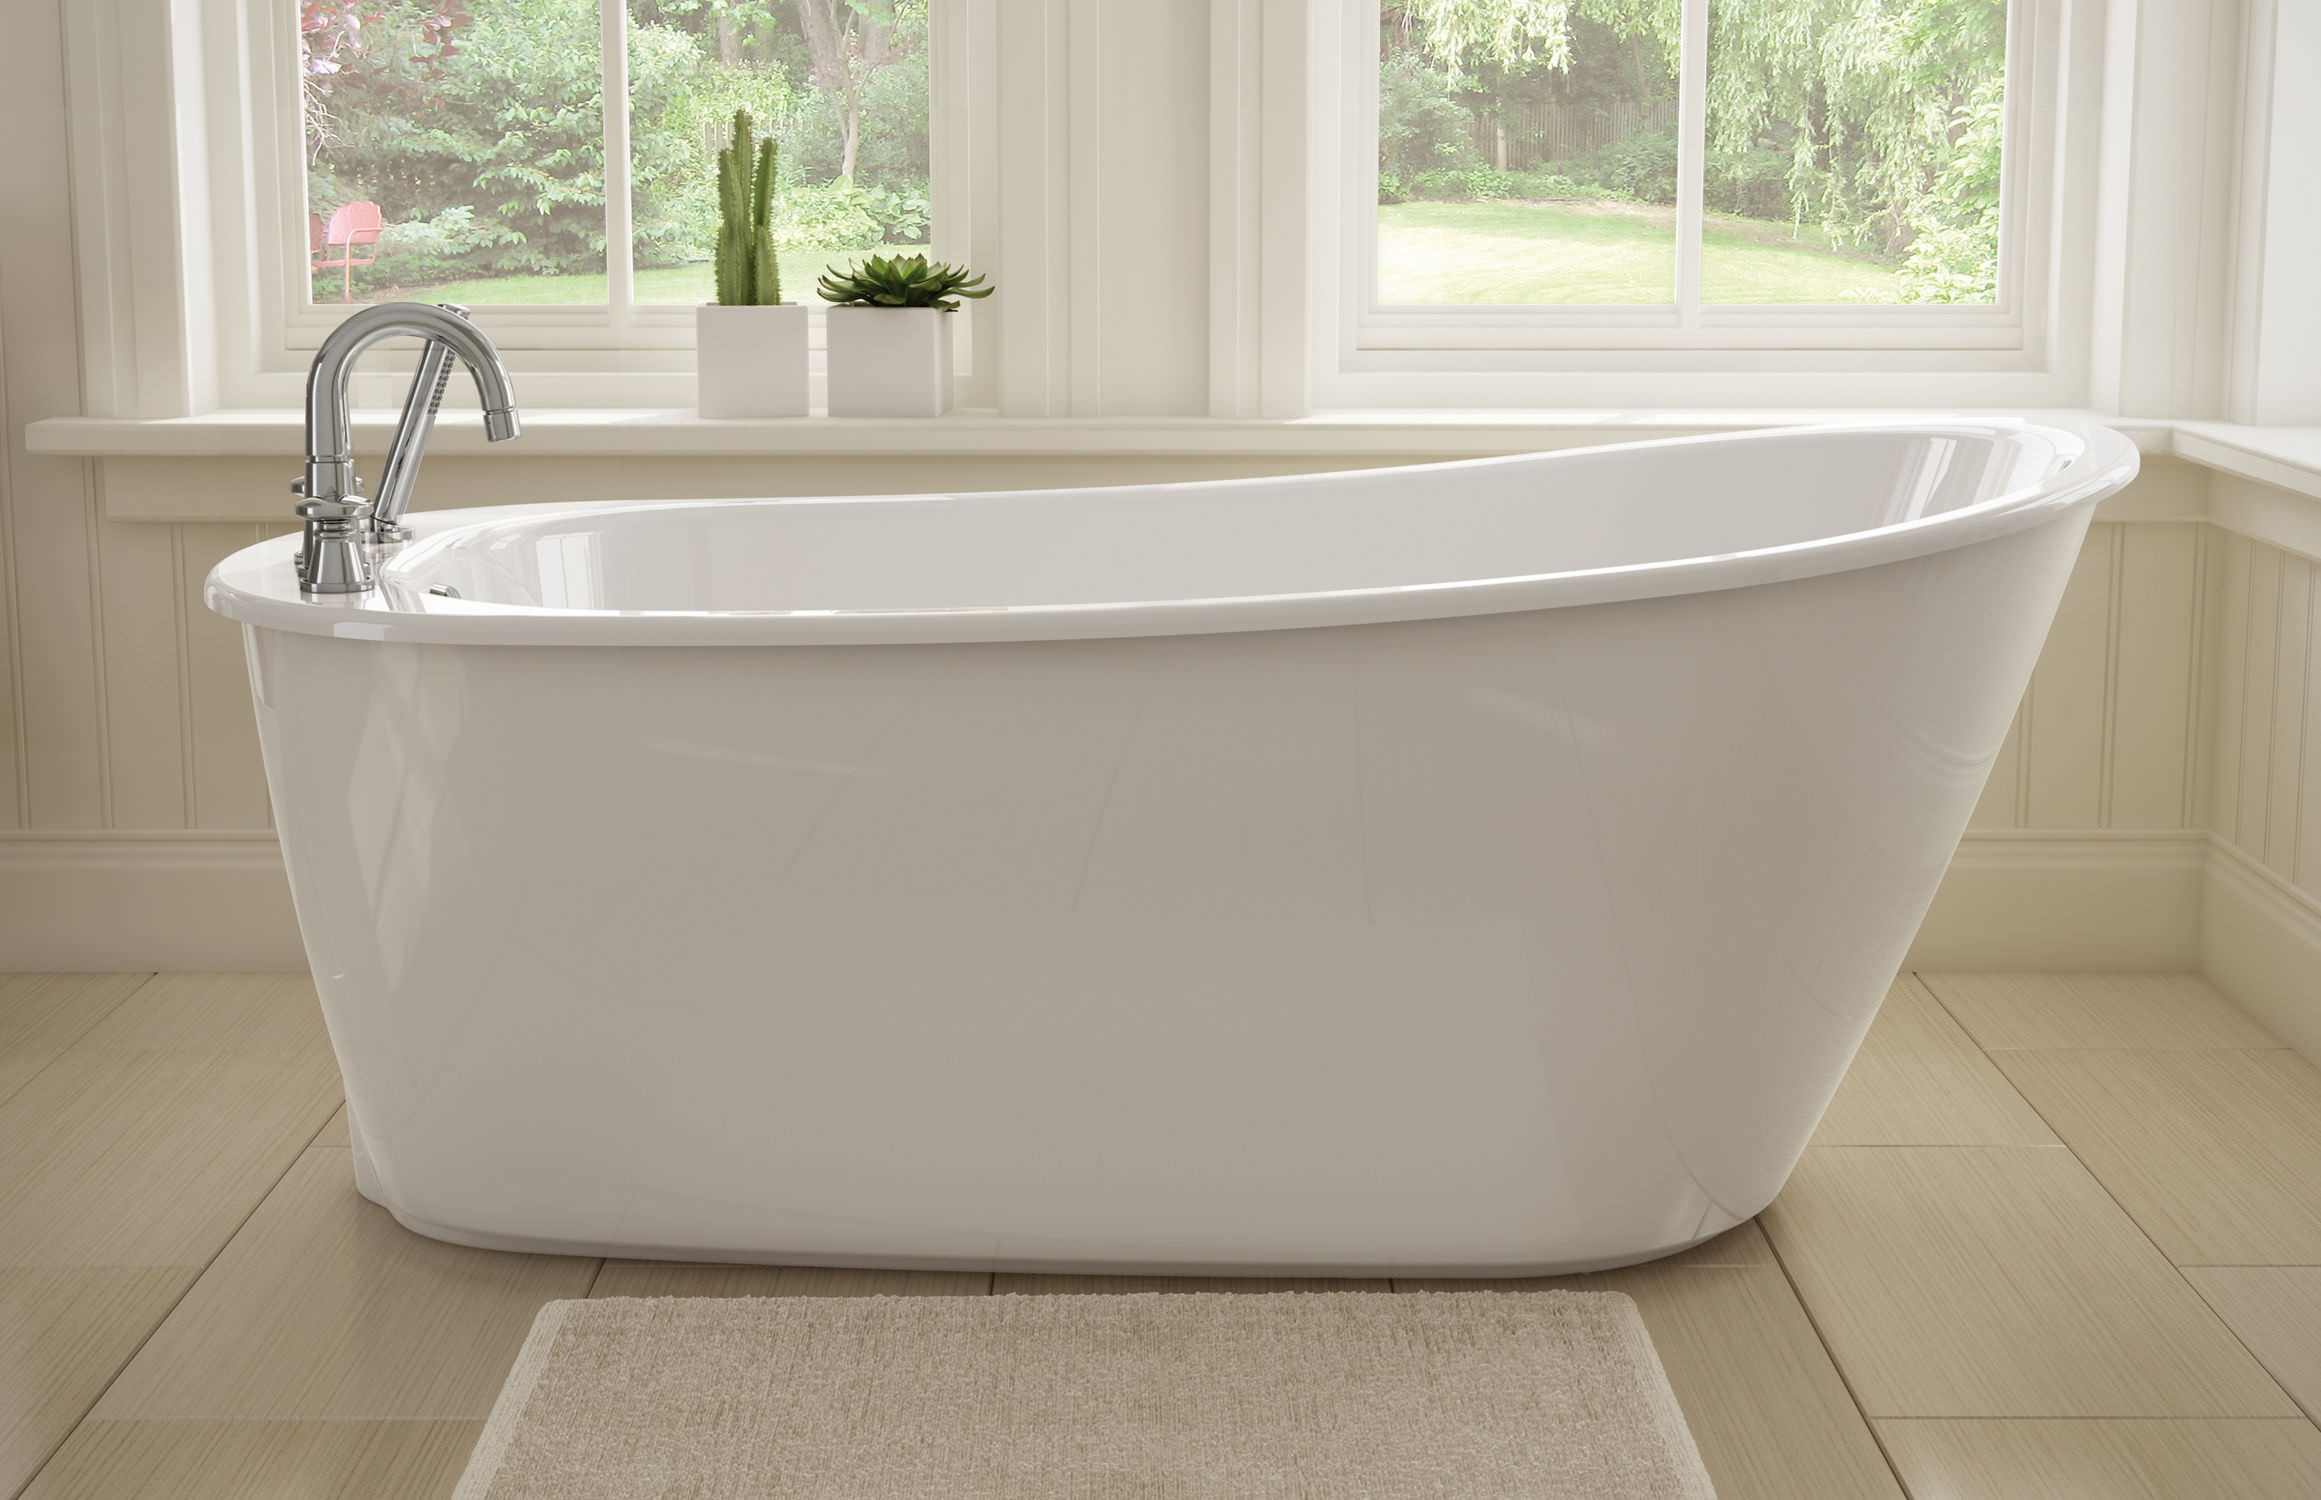 Freestanding bathtub / oval / acrylic - SAX - MAAX bathroom